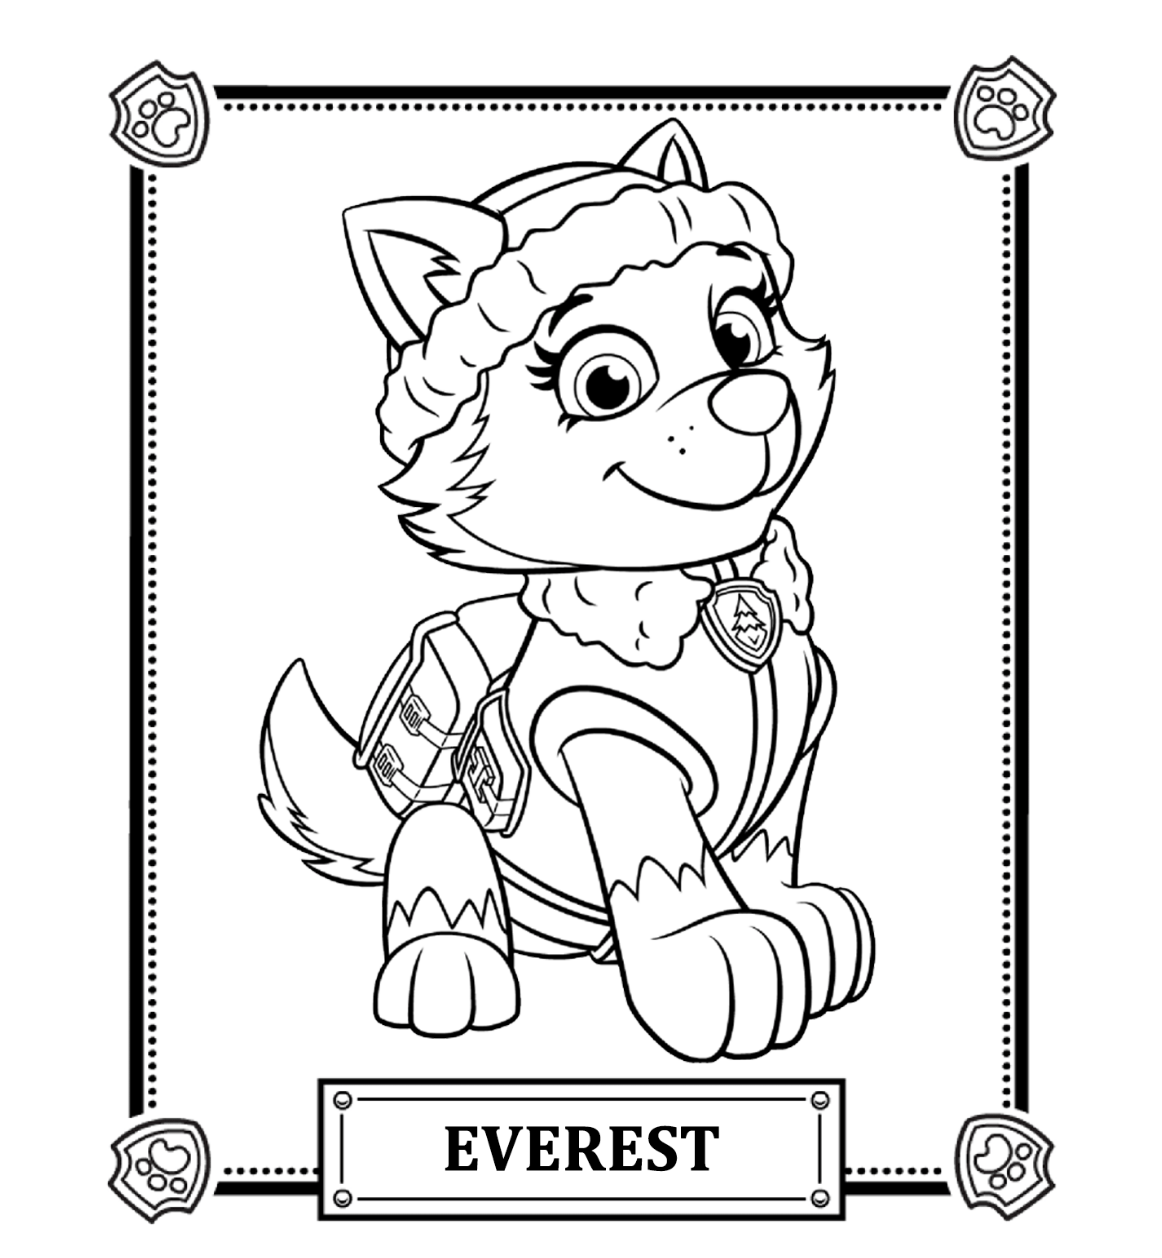 Paw patrol coloring pages happy birthday - Paw Patrol Everest Coloring Pages